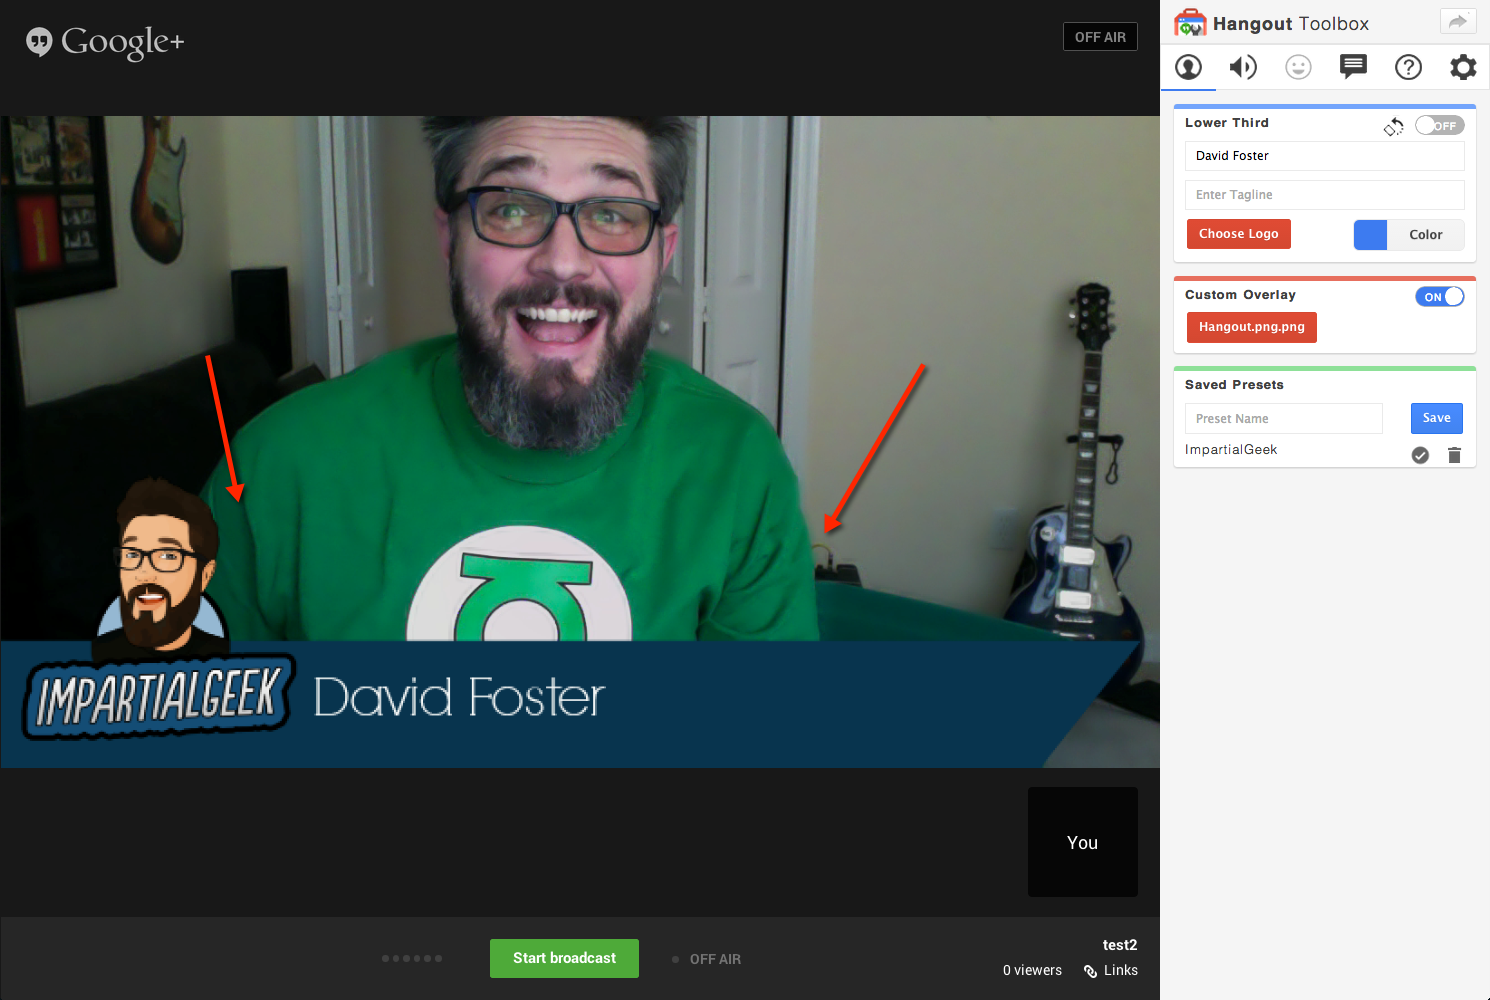 Google Hangout Lower Third